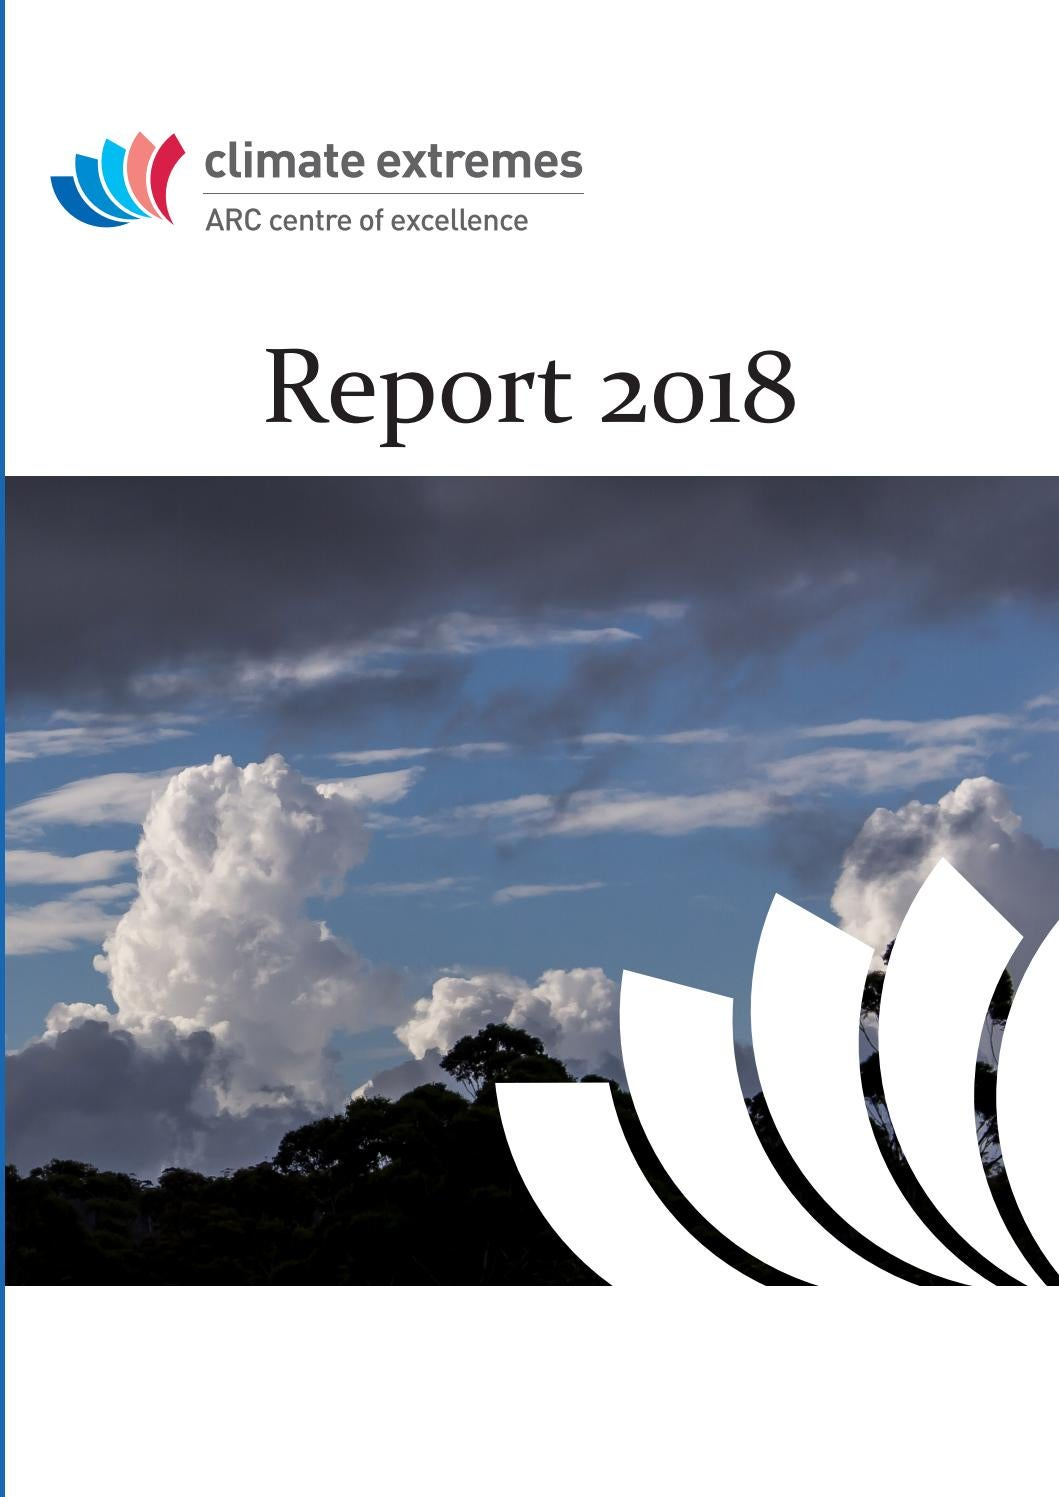 ARC Centre of Excellence for Climate Extremes - Report 2018